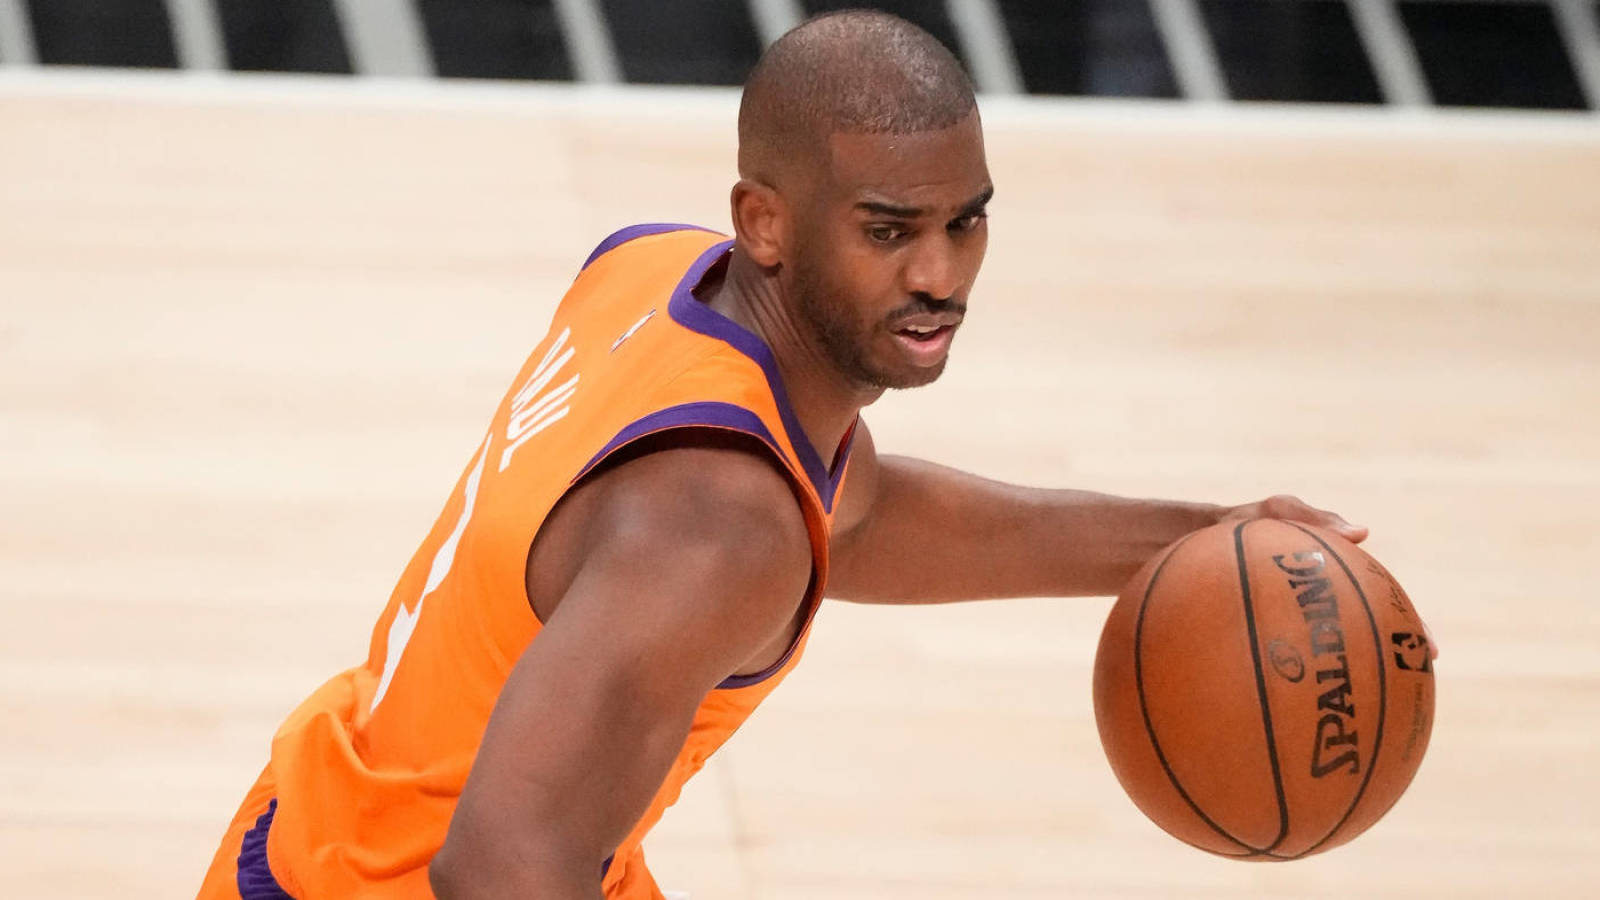 CP3: Extra rest before the finals has helped hand injuries